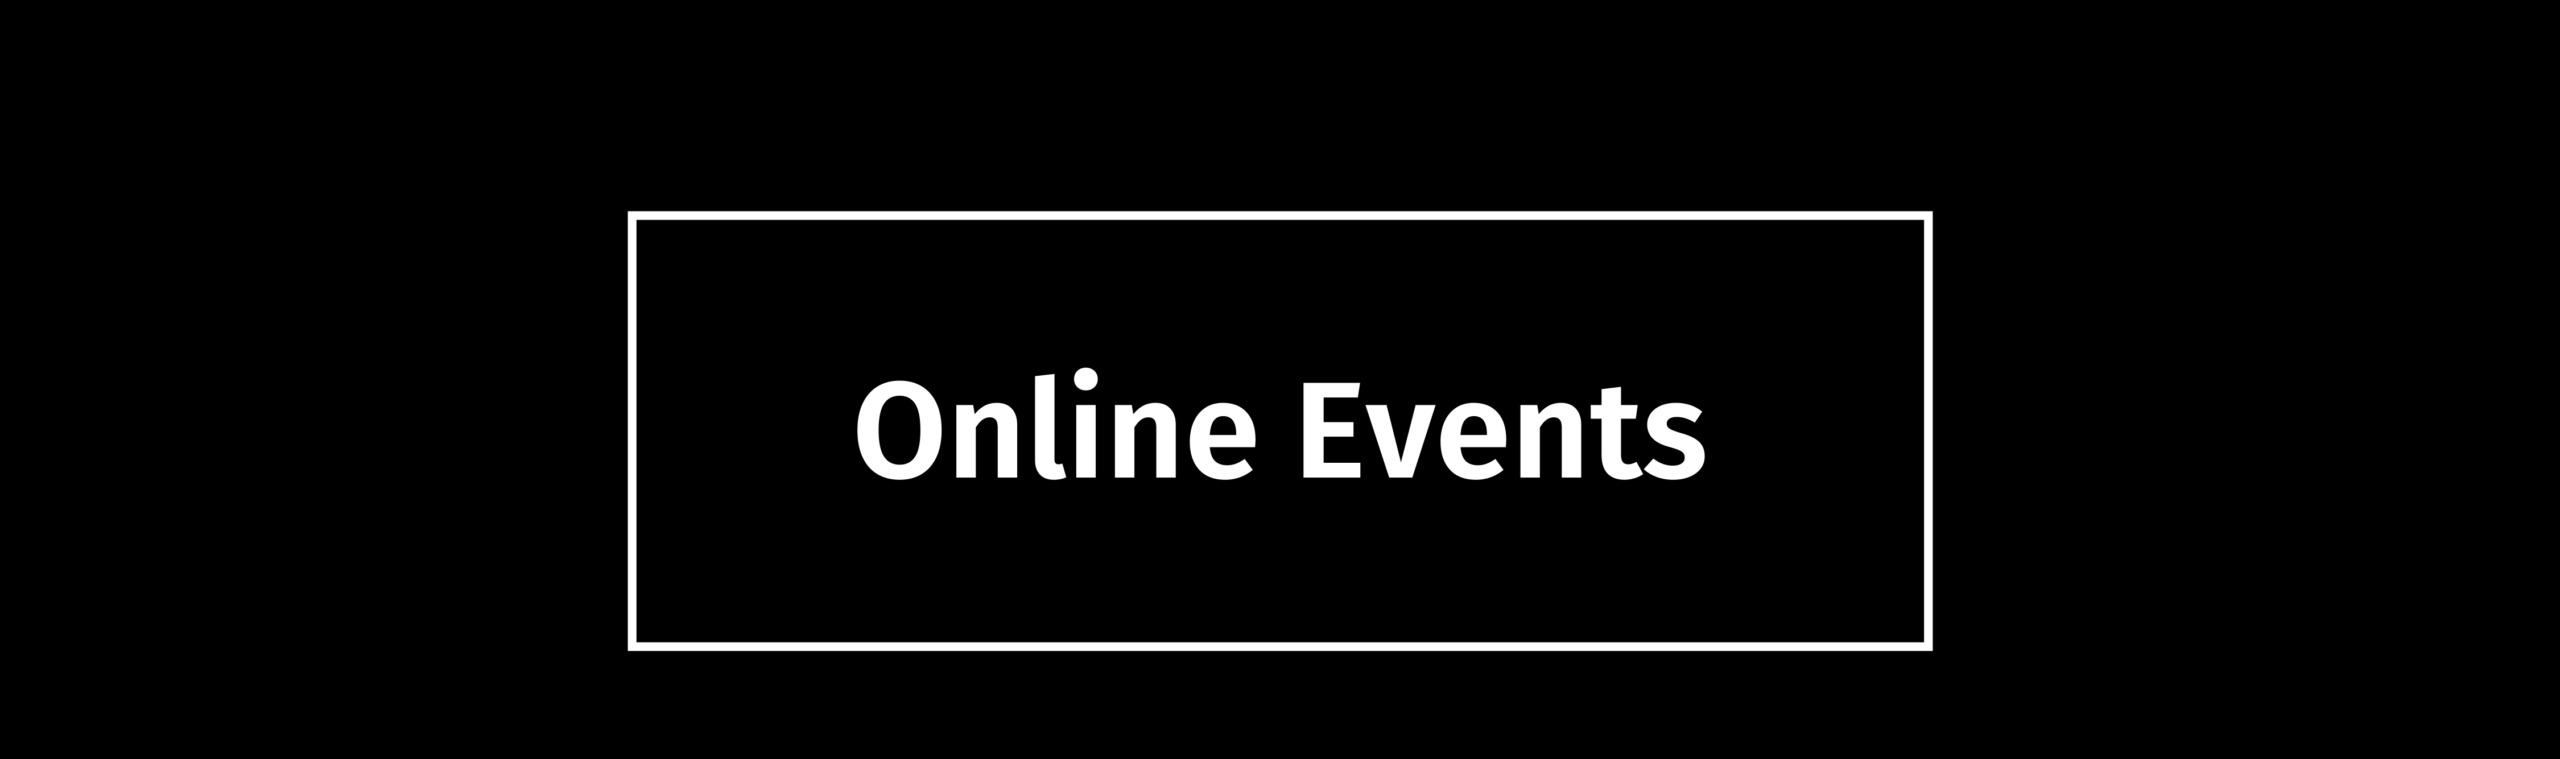 Page title: Online events